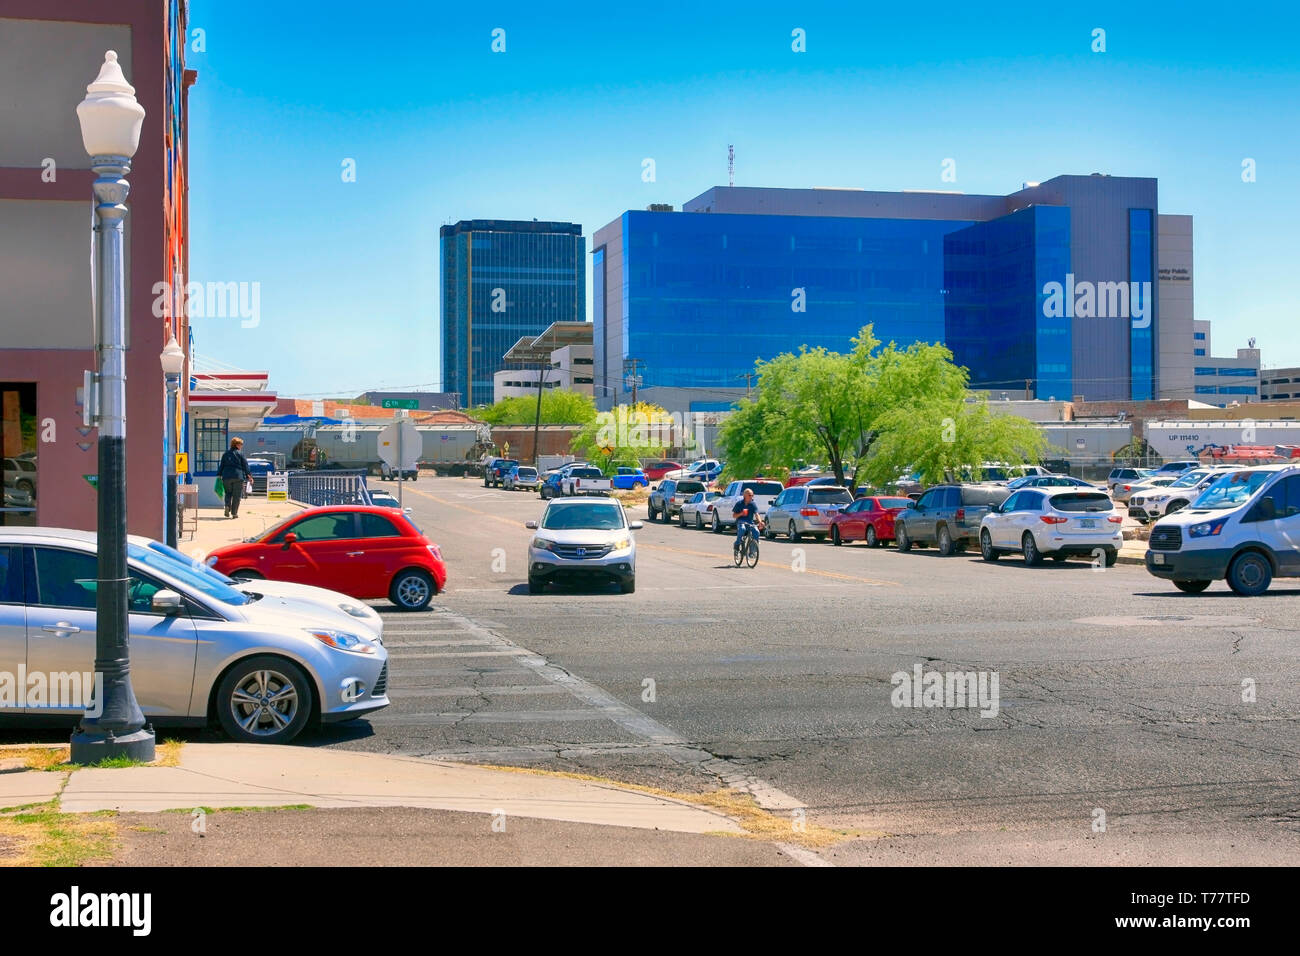 Urban regeneration of old warehouses and vacant land in the arts district of N Downtown Tucson AZ - Stock Image